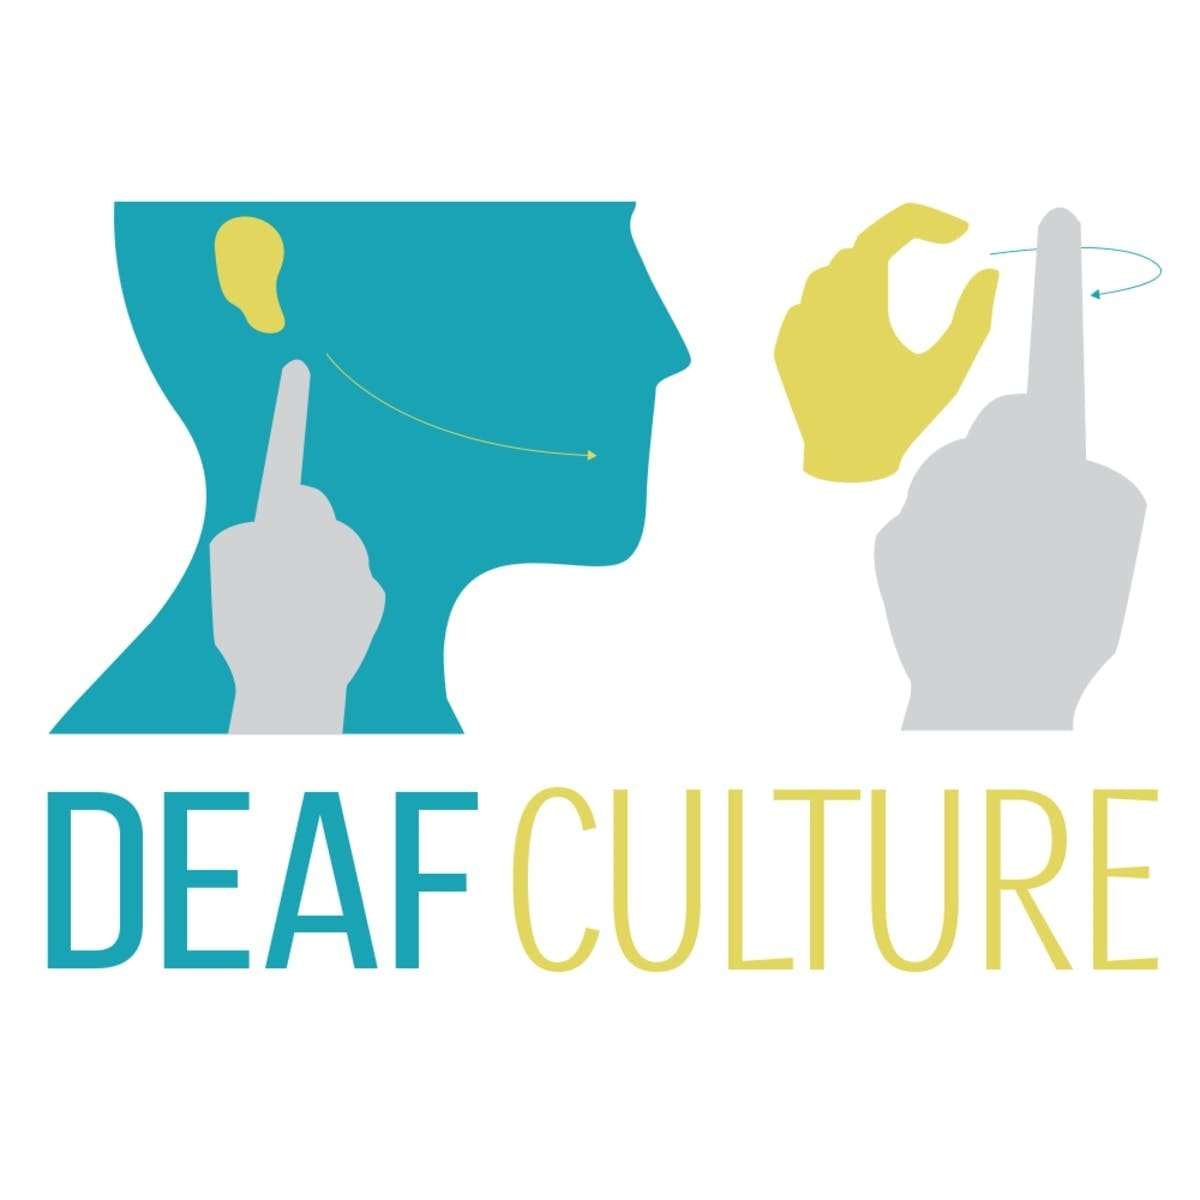 Essays on Deaf Culture